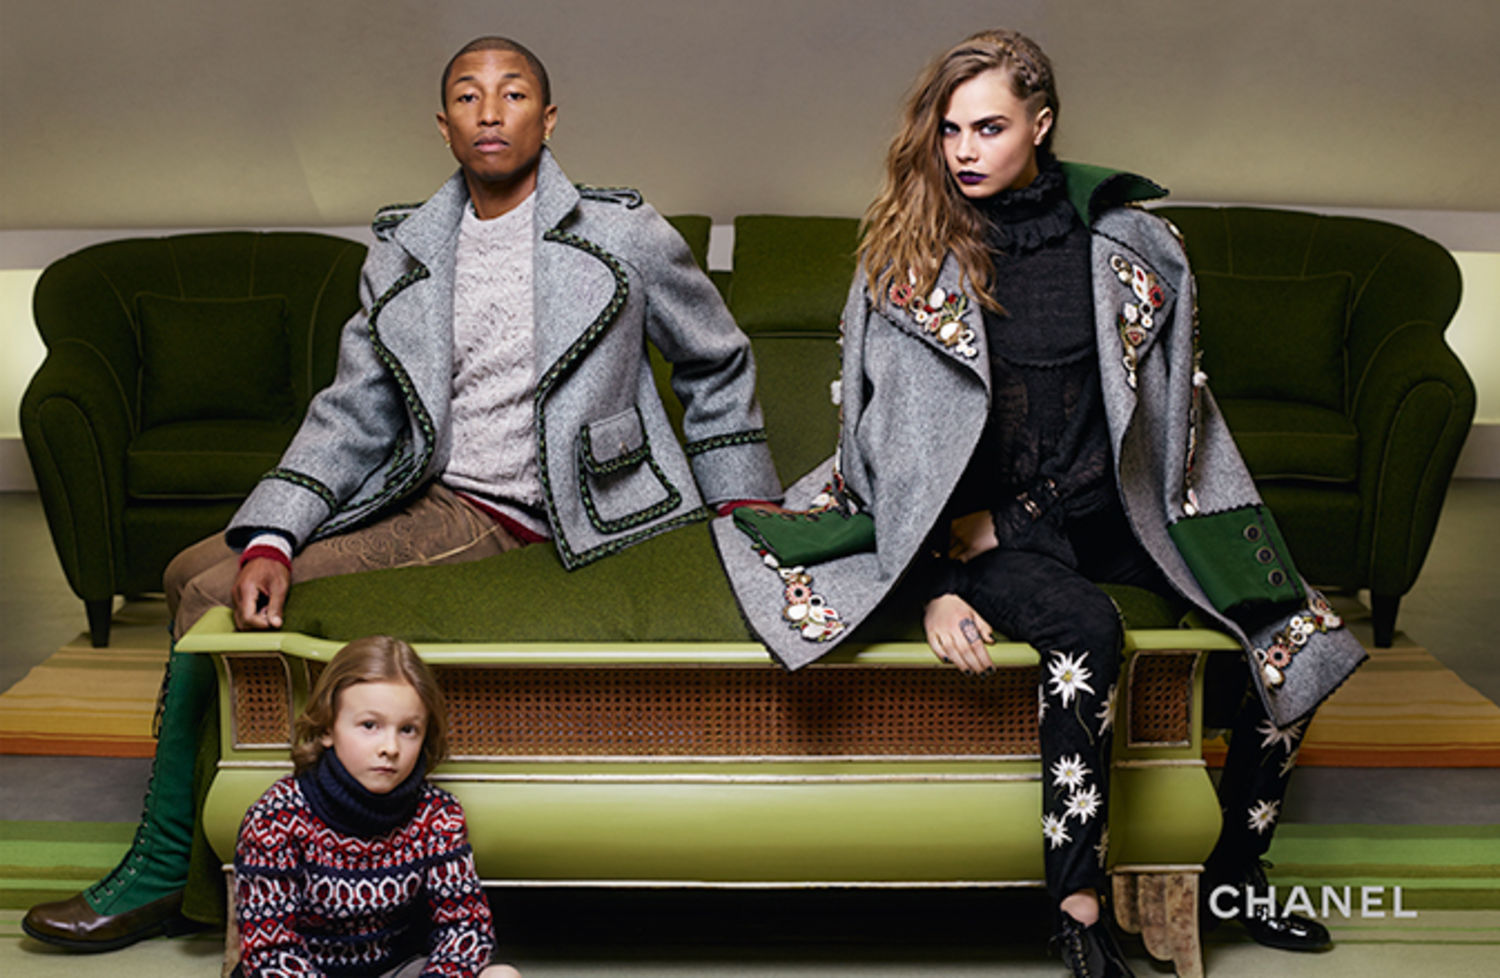 Pharrell Williams & Cara Delevinge for Chanel Pre-Fall 2015